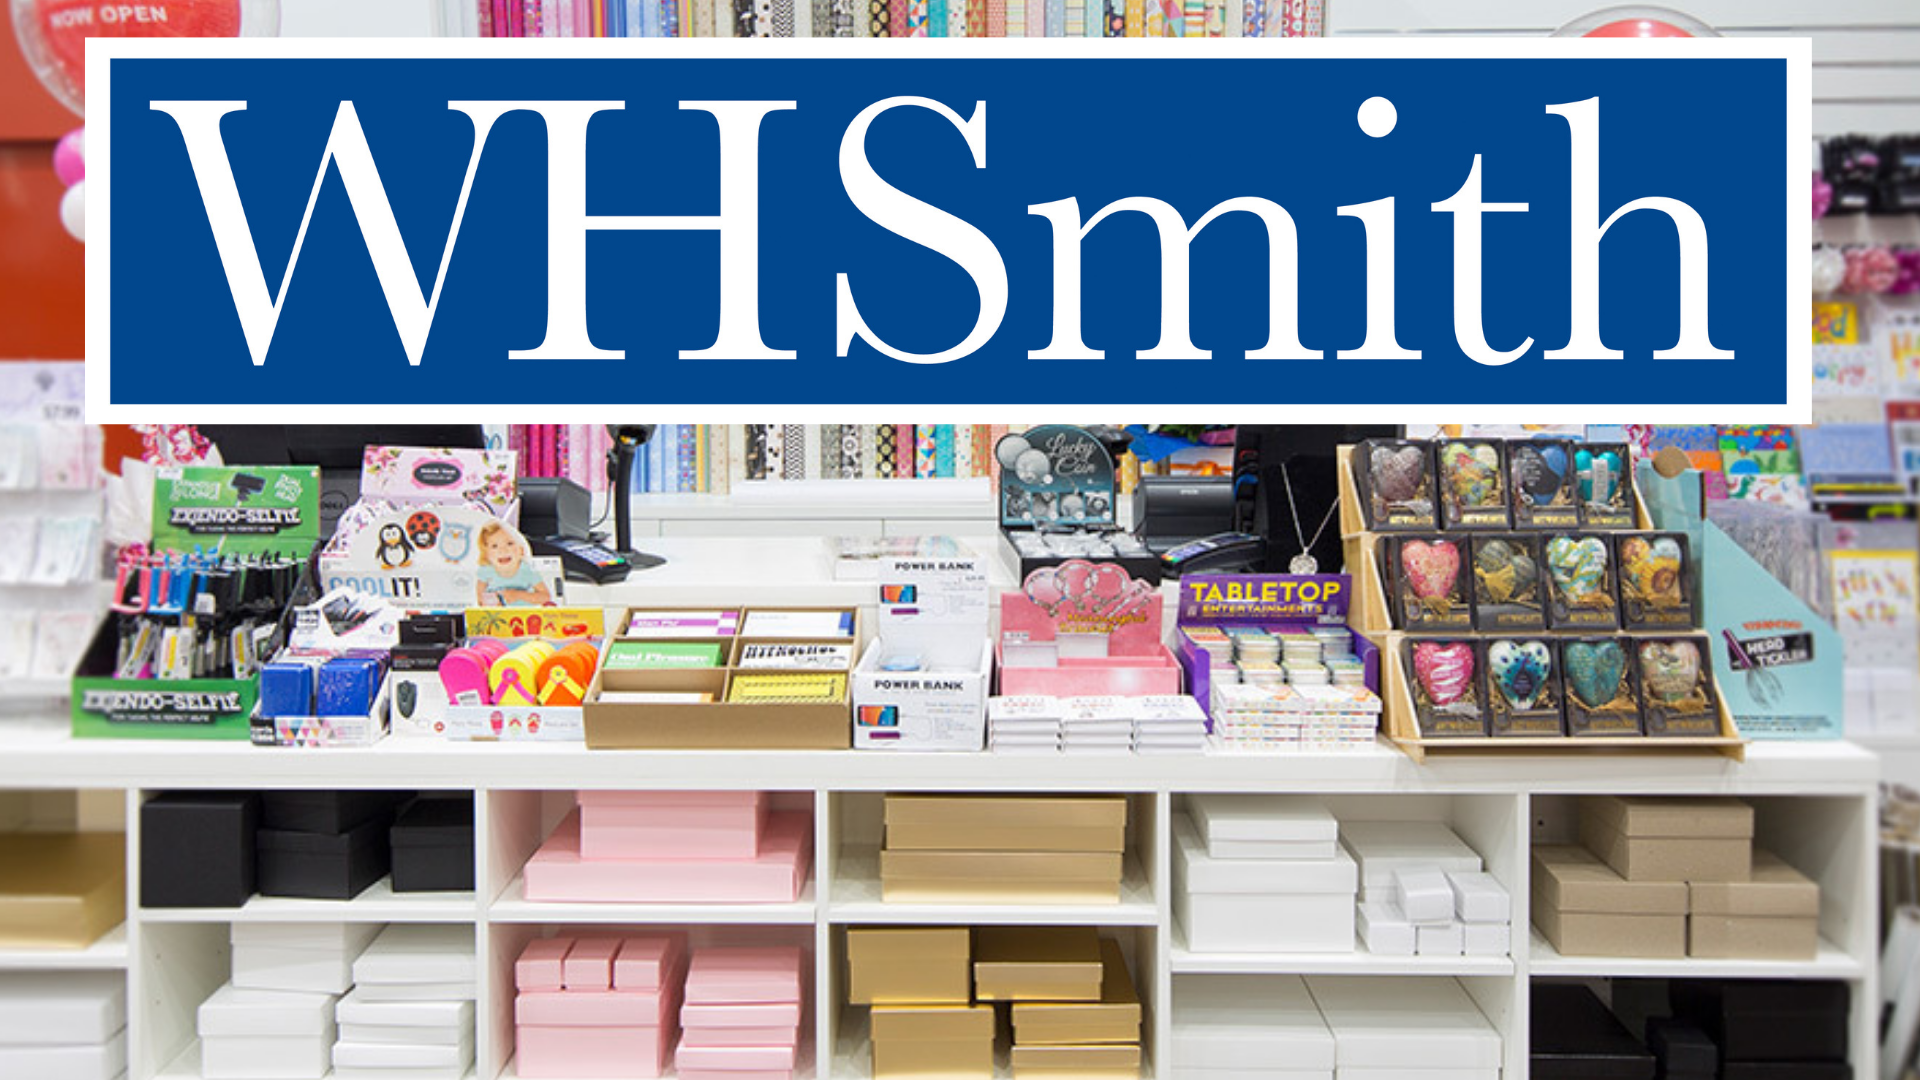 Agenda Plaza converted to WHSmith